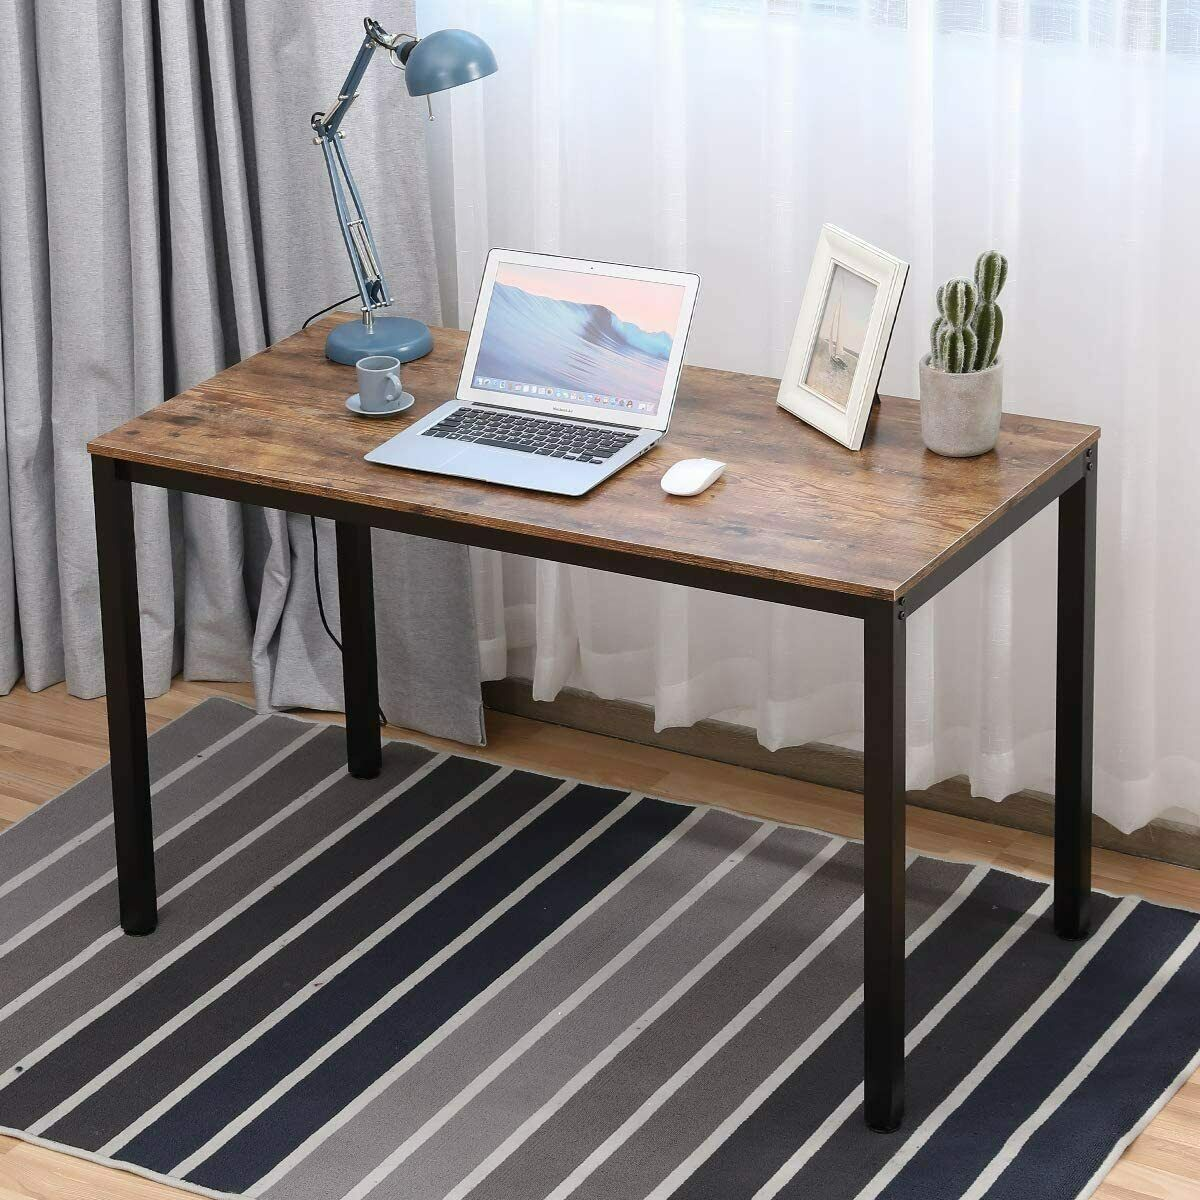 Image of: Mid Century Modern Design Home Office Writing Computer Desk With Drawers For Sale Online Ebay